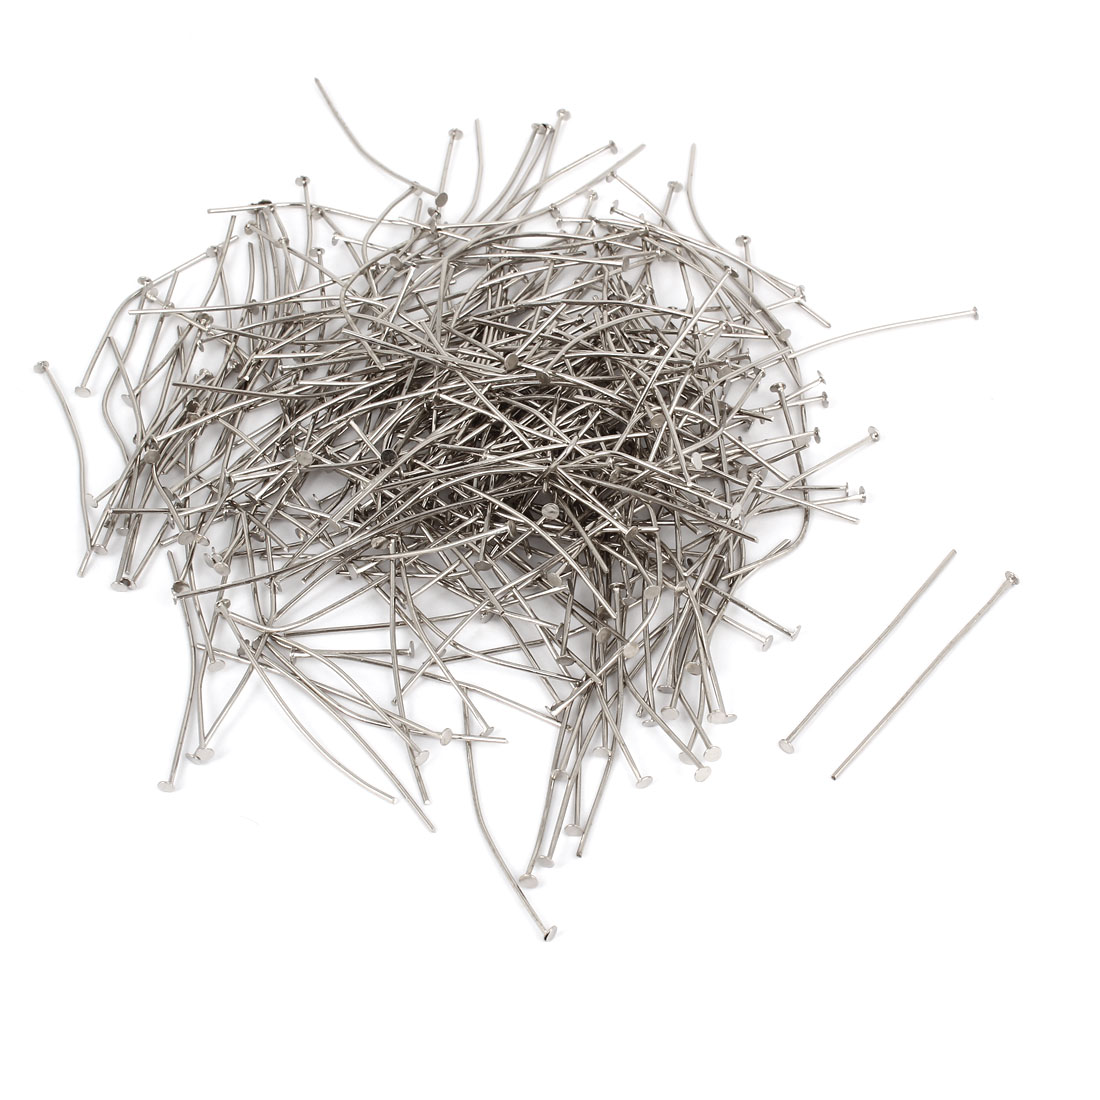 460 Pcs 40mm Length Flat Top Head Pins Headpins Wire Beading Tool